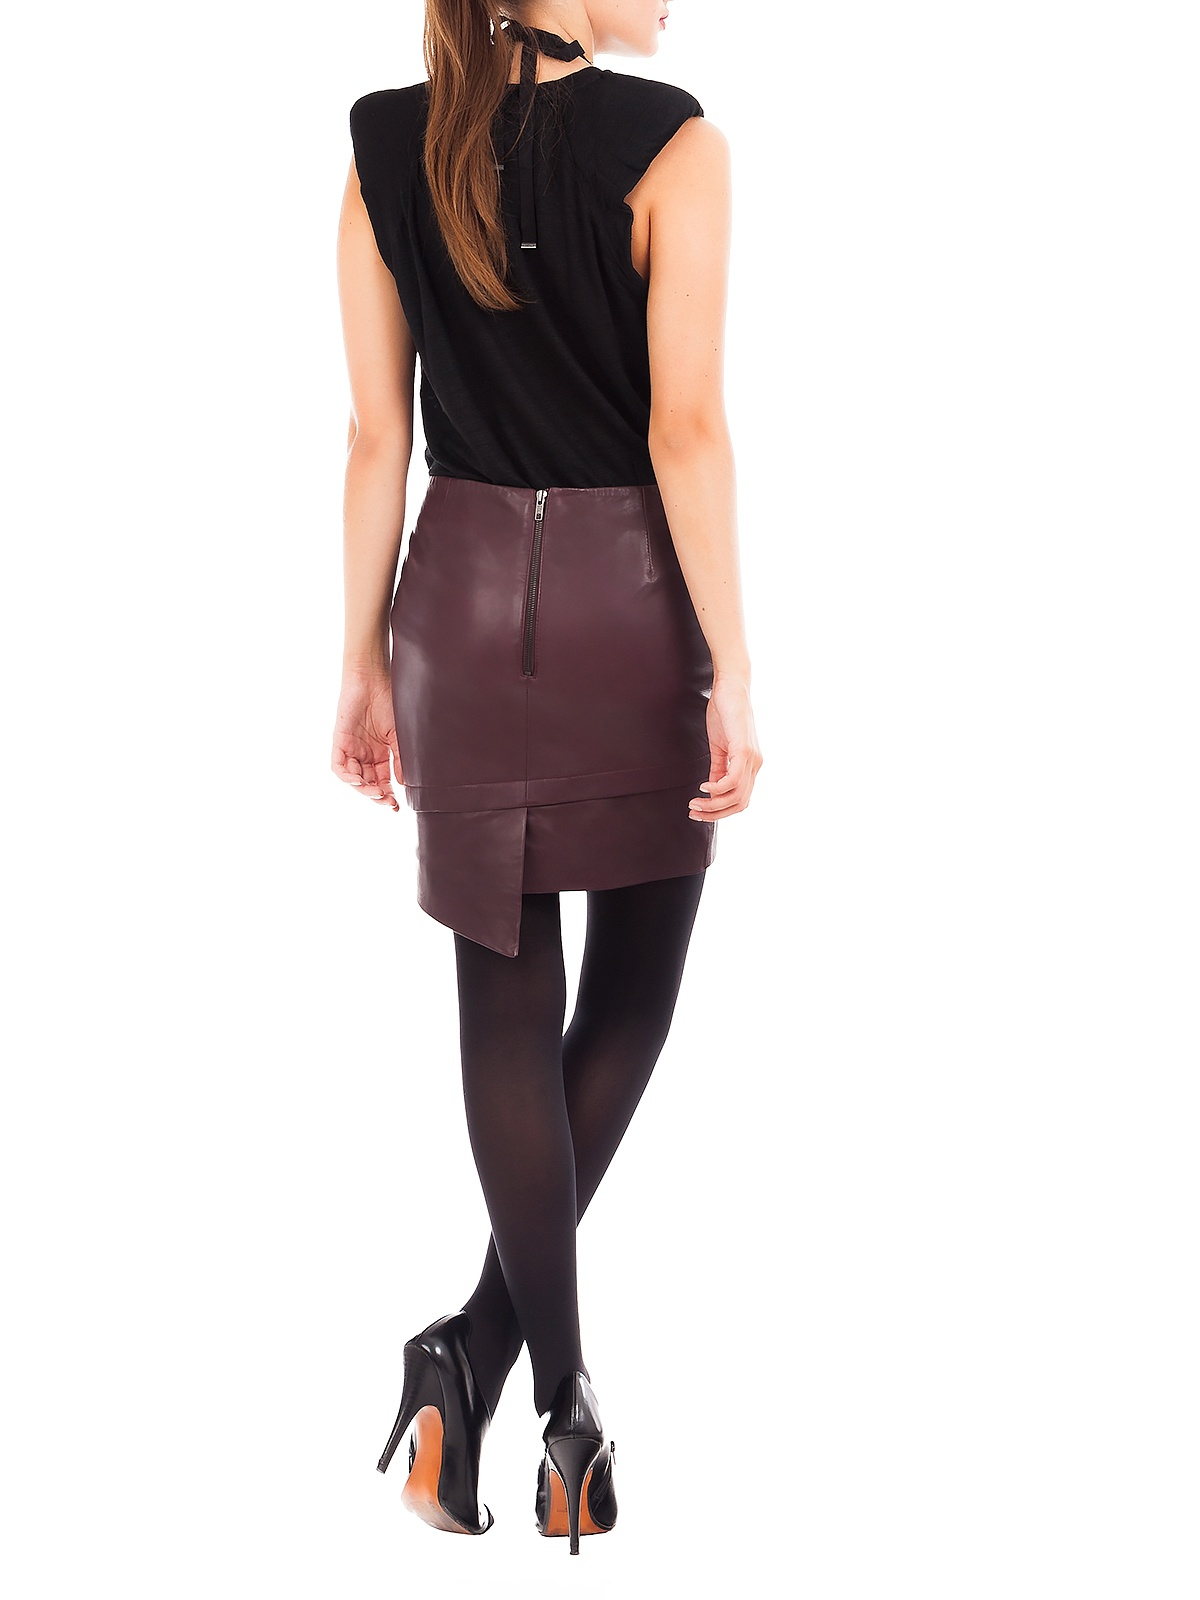 MIKKI BURGUNDY MINI SKIRT | GIRISSIMA.COM - Collectible fashion to love and to last